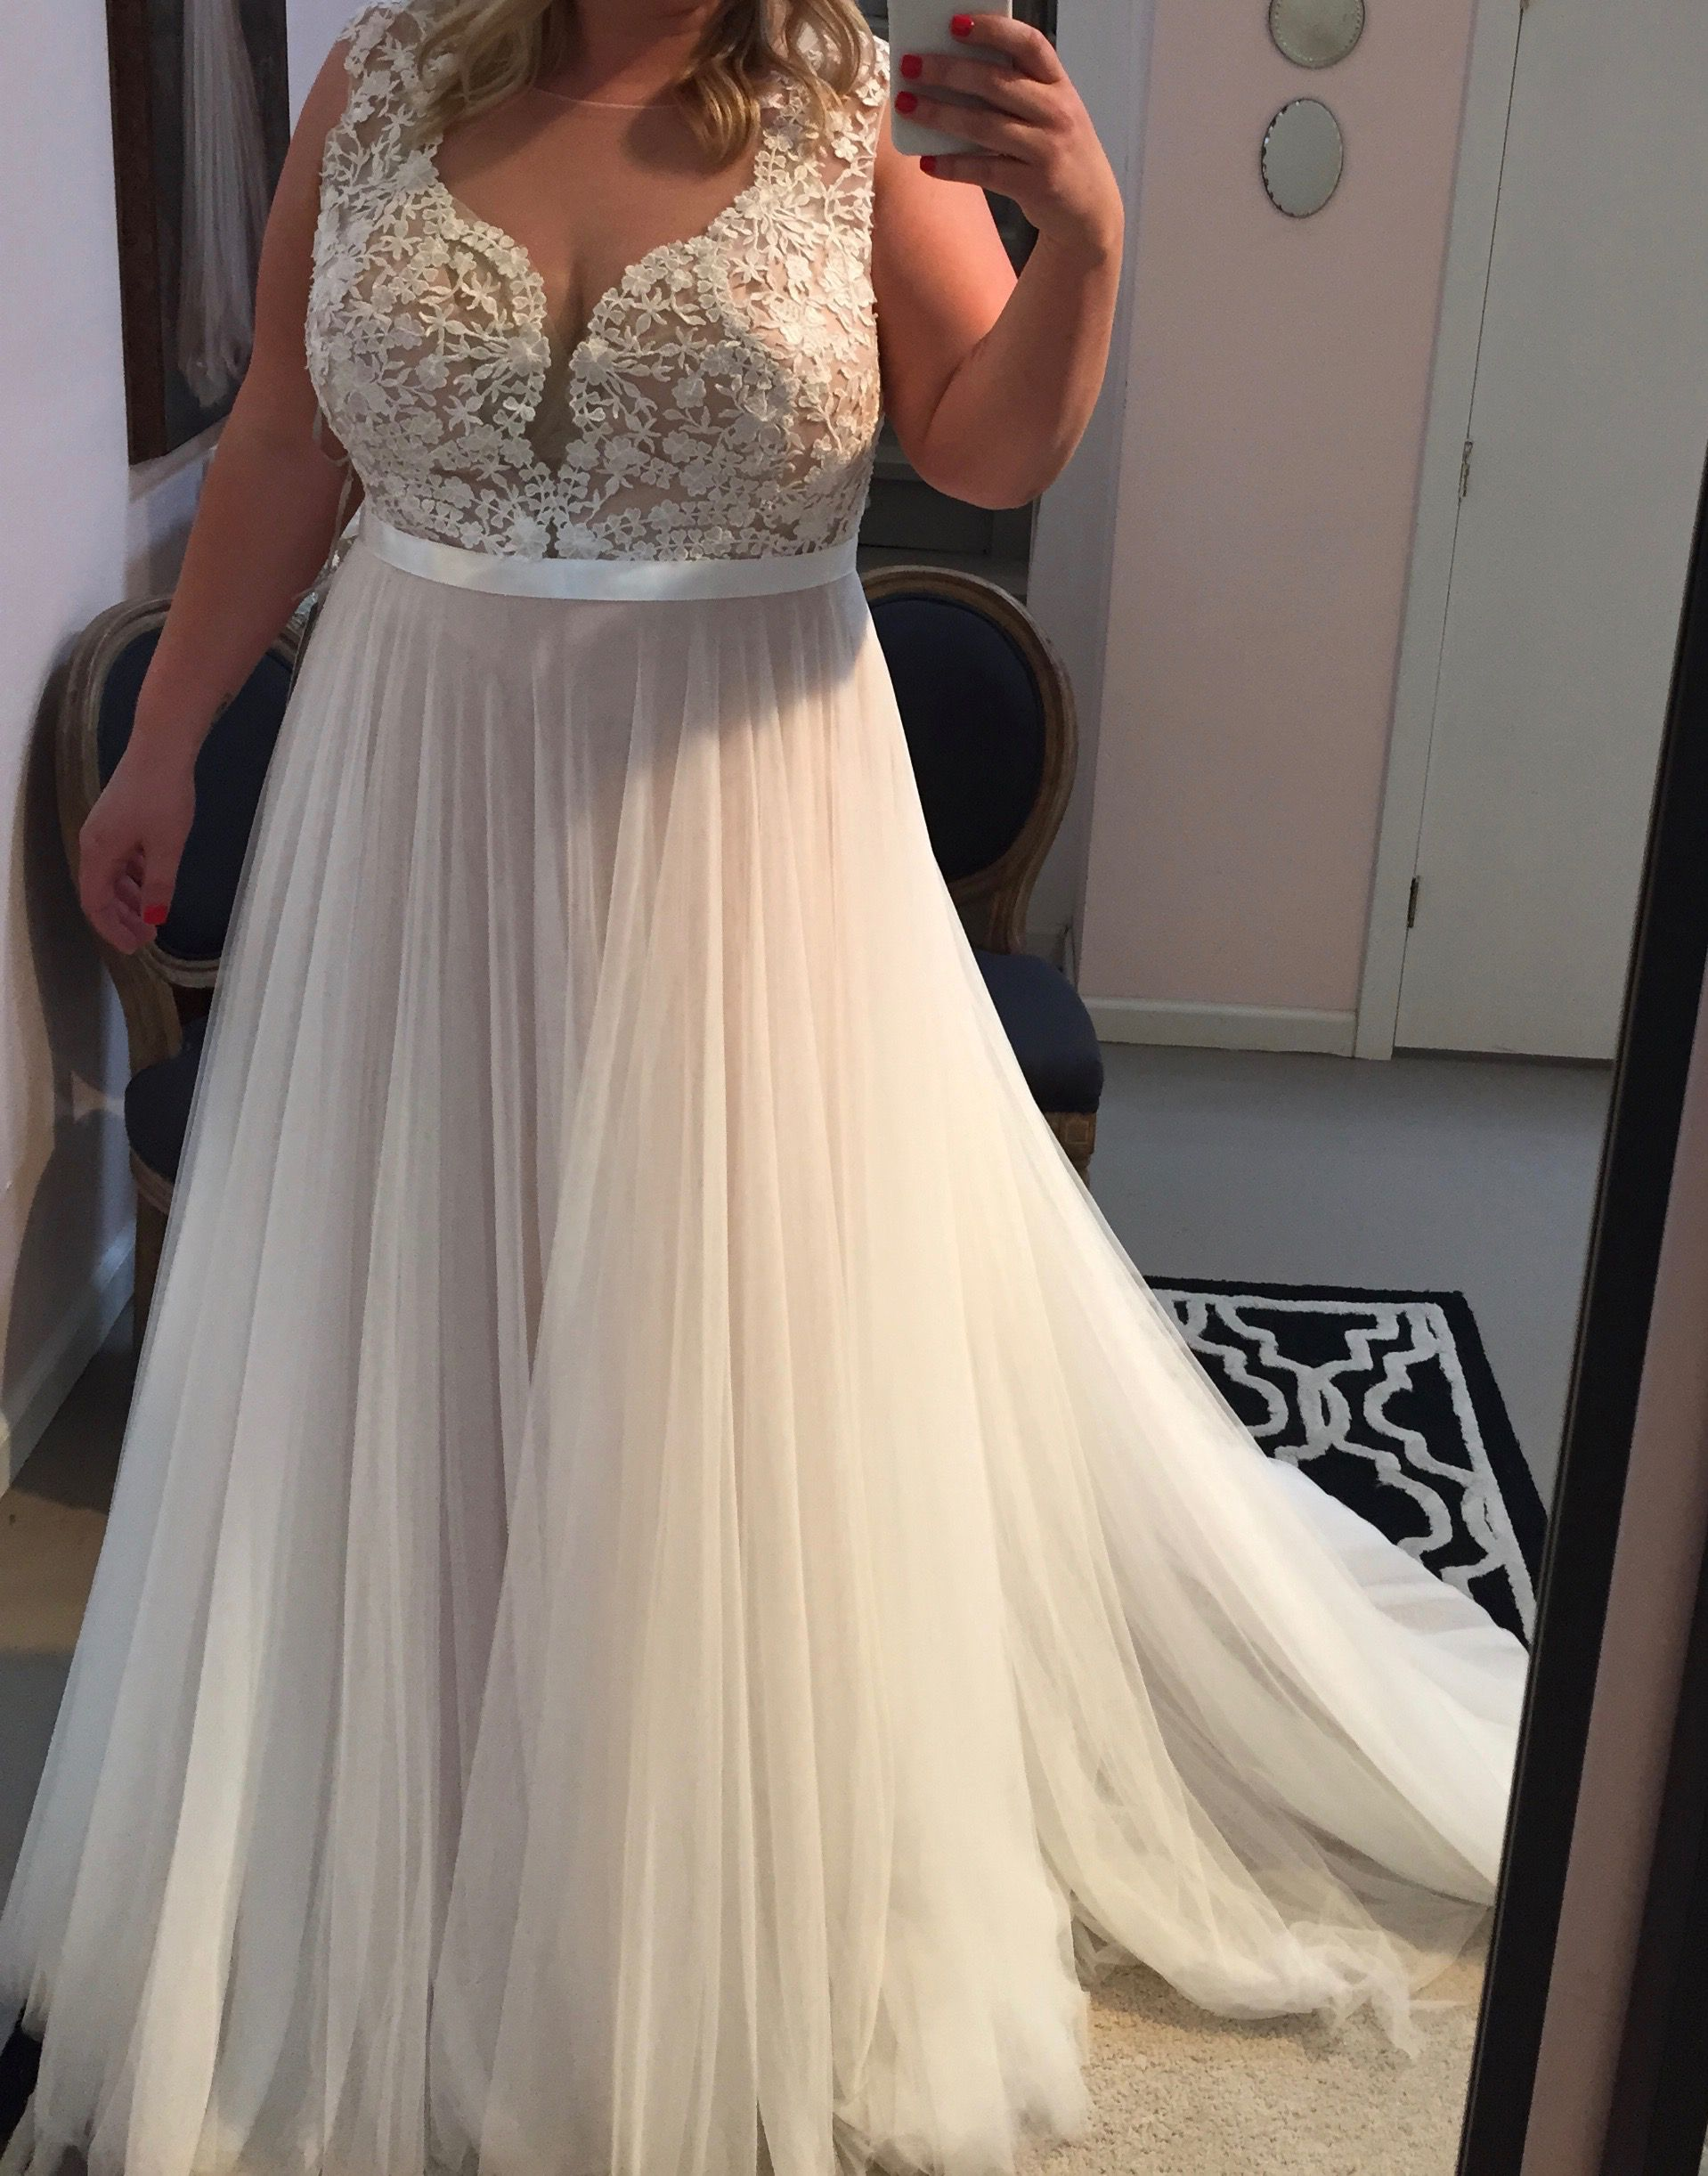 Plus size wedding dress beach wedding dress wedding for Wedding dresses for larger sizes